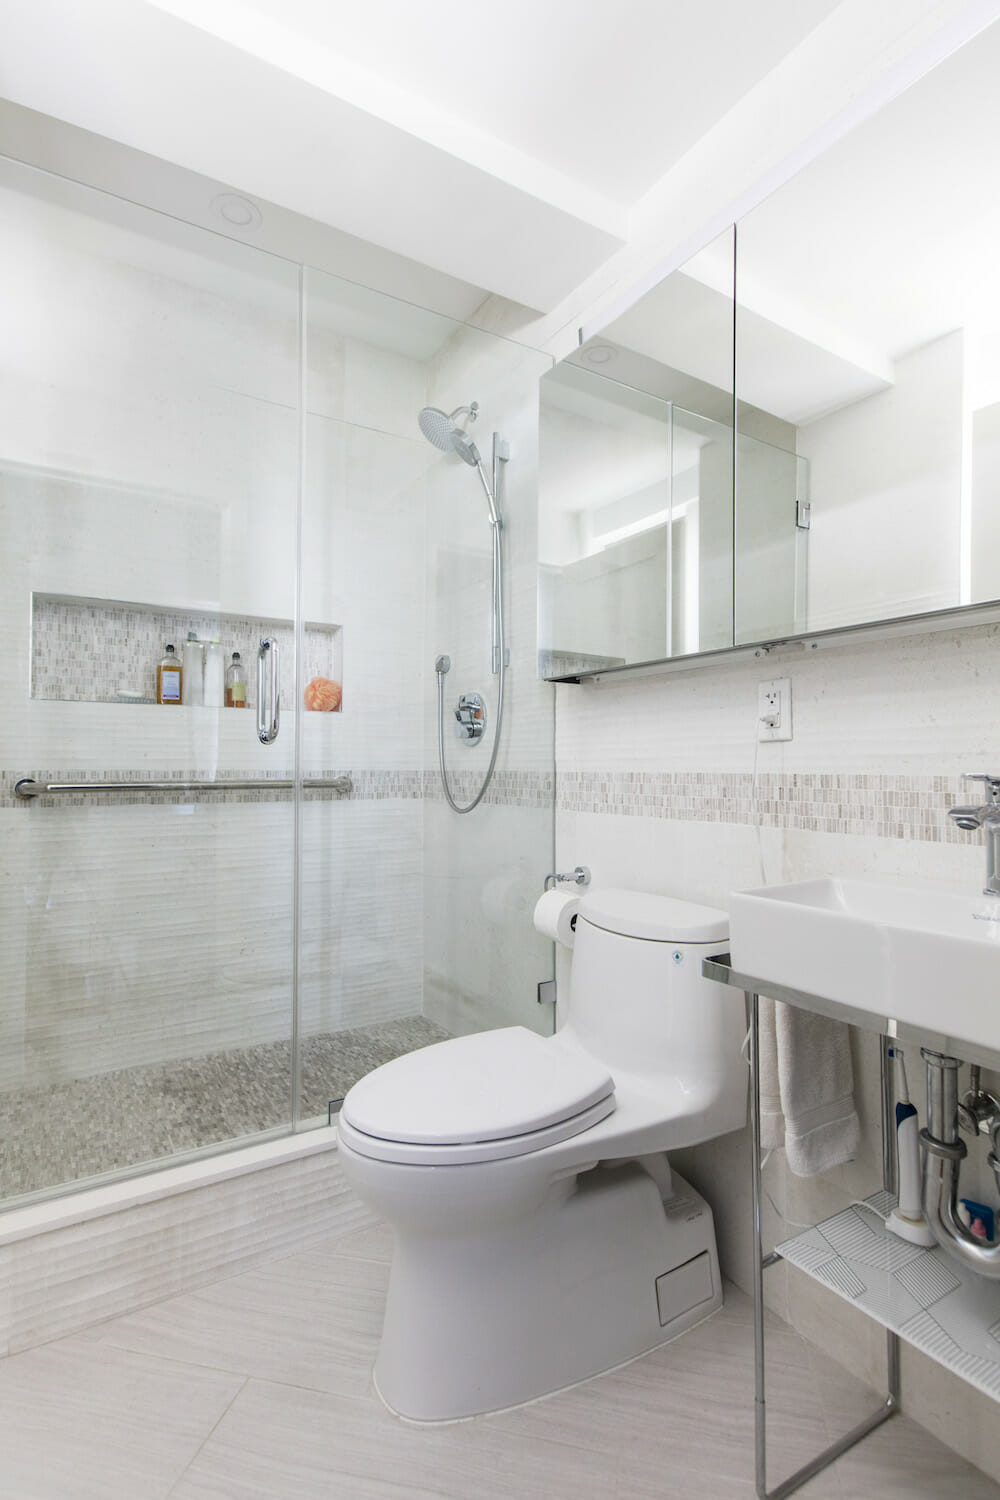 A remodeled bathroom with step-in shower, glass door and shower niche storage